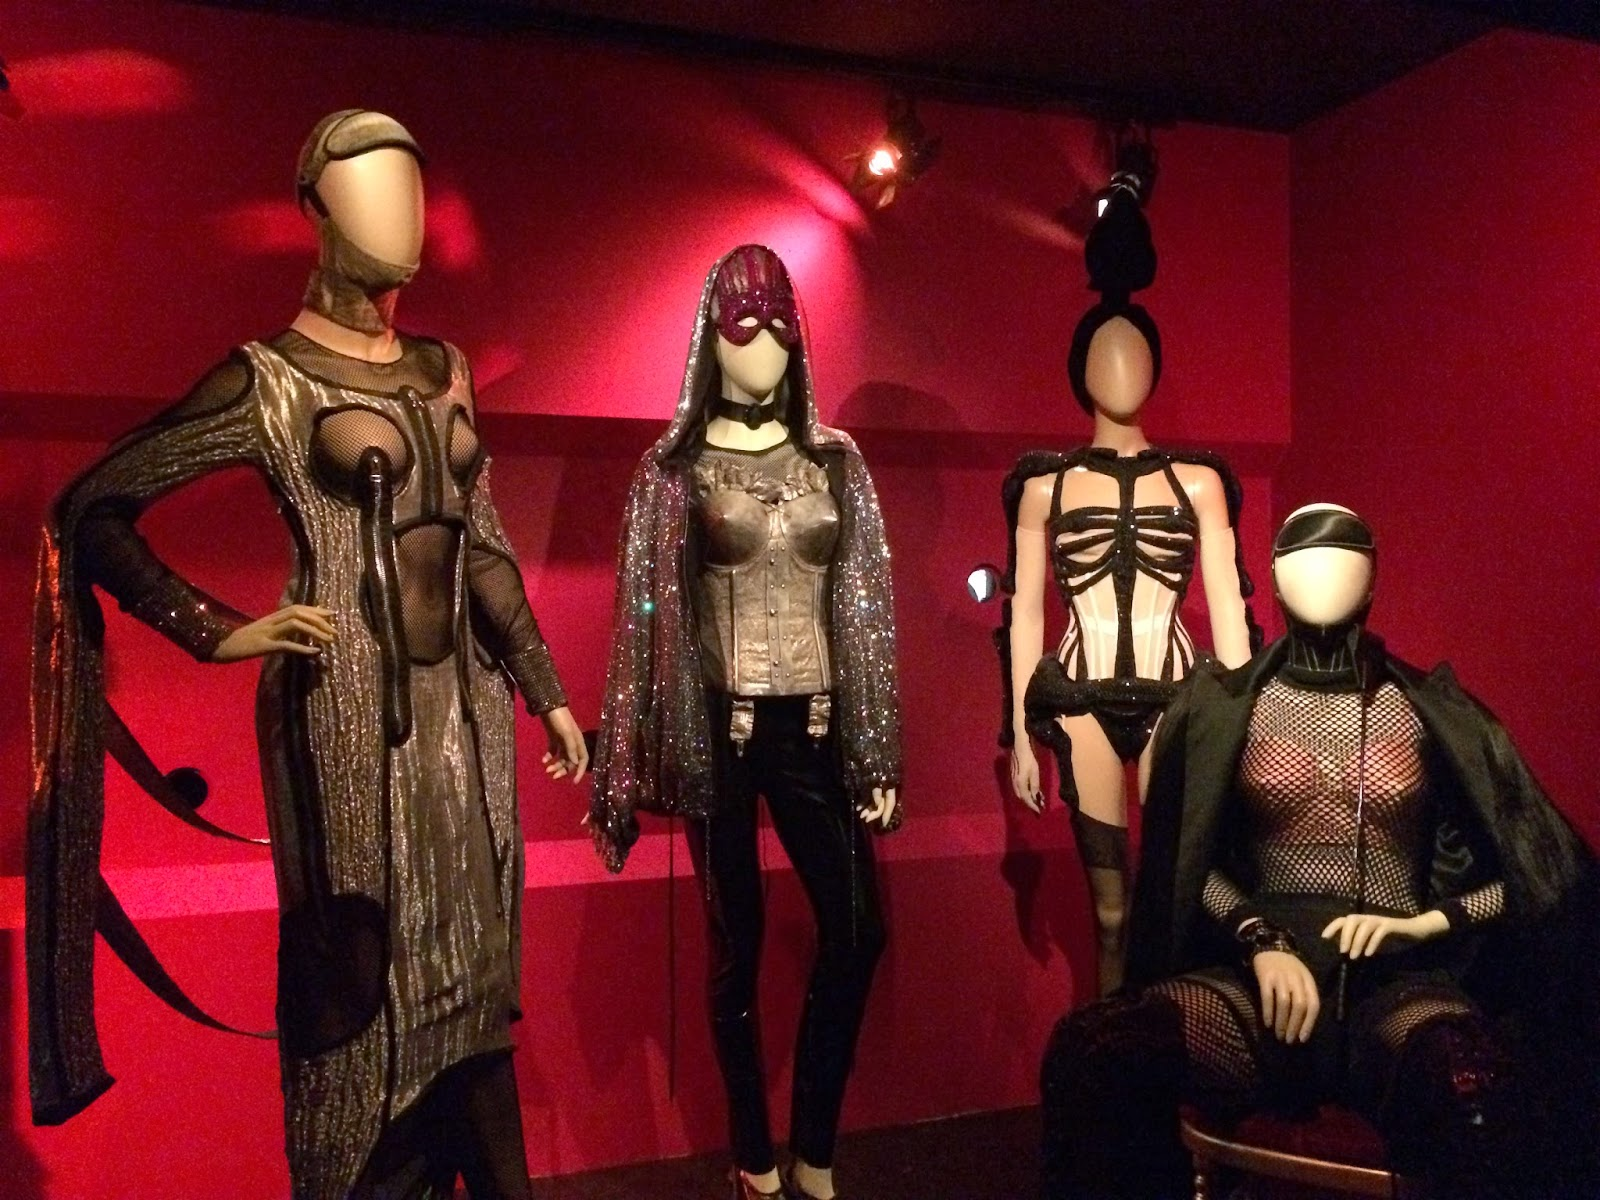 Bondage inspired clothing by Jean Paul Gaultier, Le Grand Palais, Paris